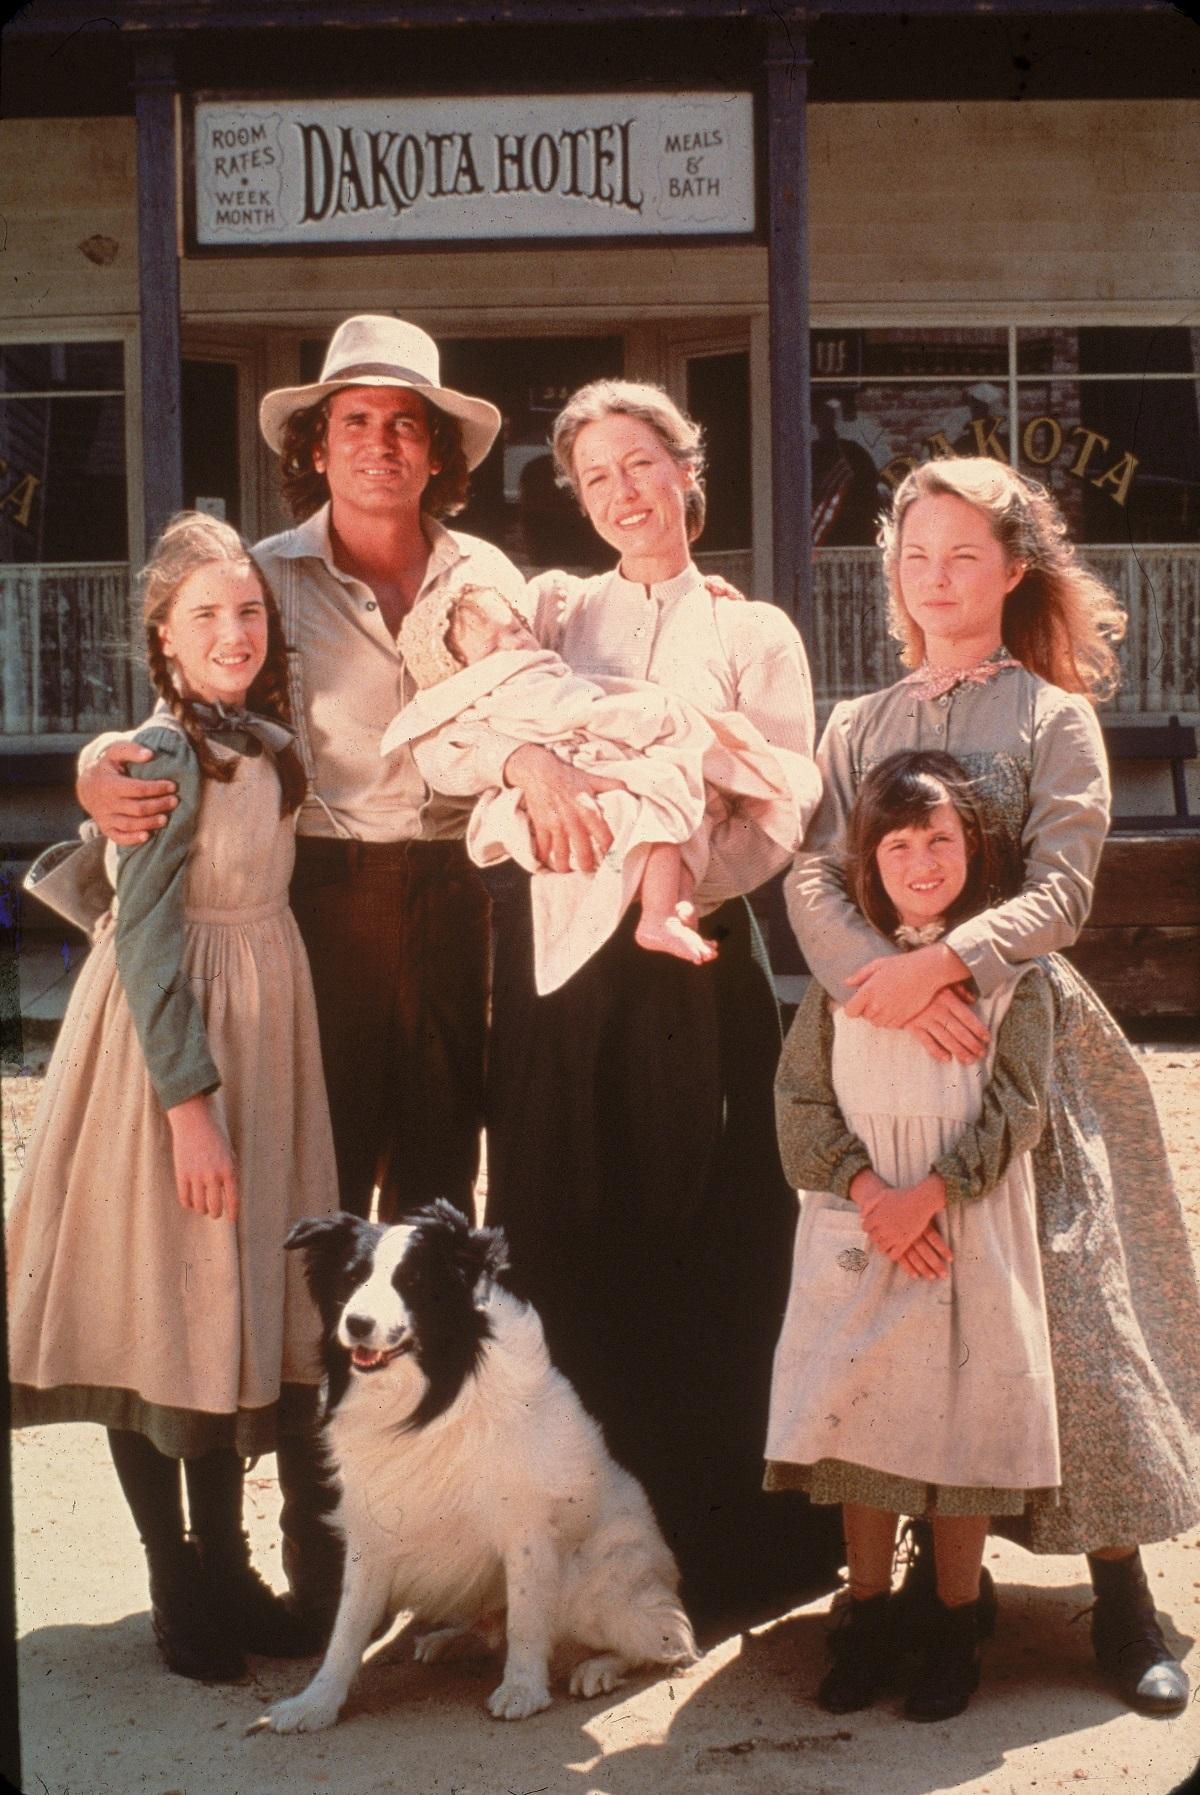 Melissa Gilbert, Michael Landon, Karen Grassle, Melissa Sue Anderson, and Lindsay or Sydney Greenbush